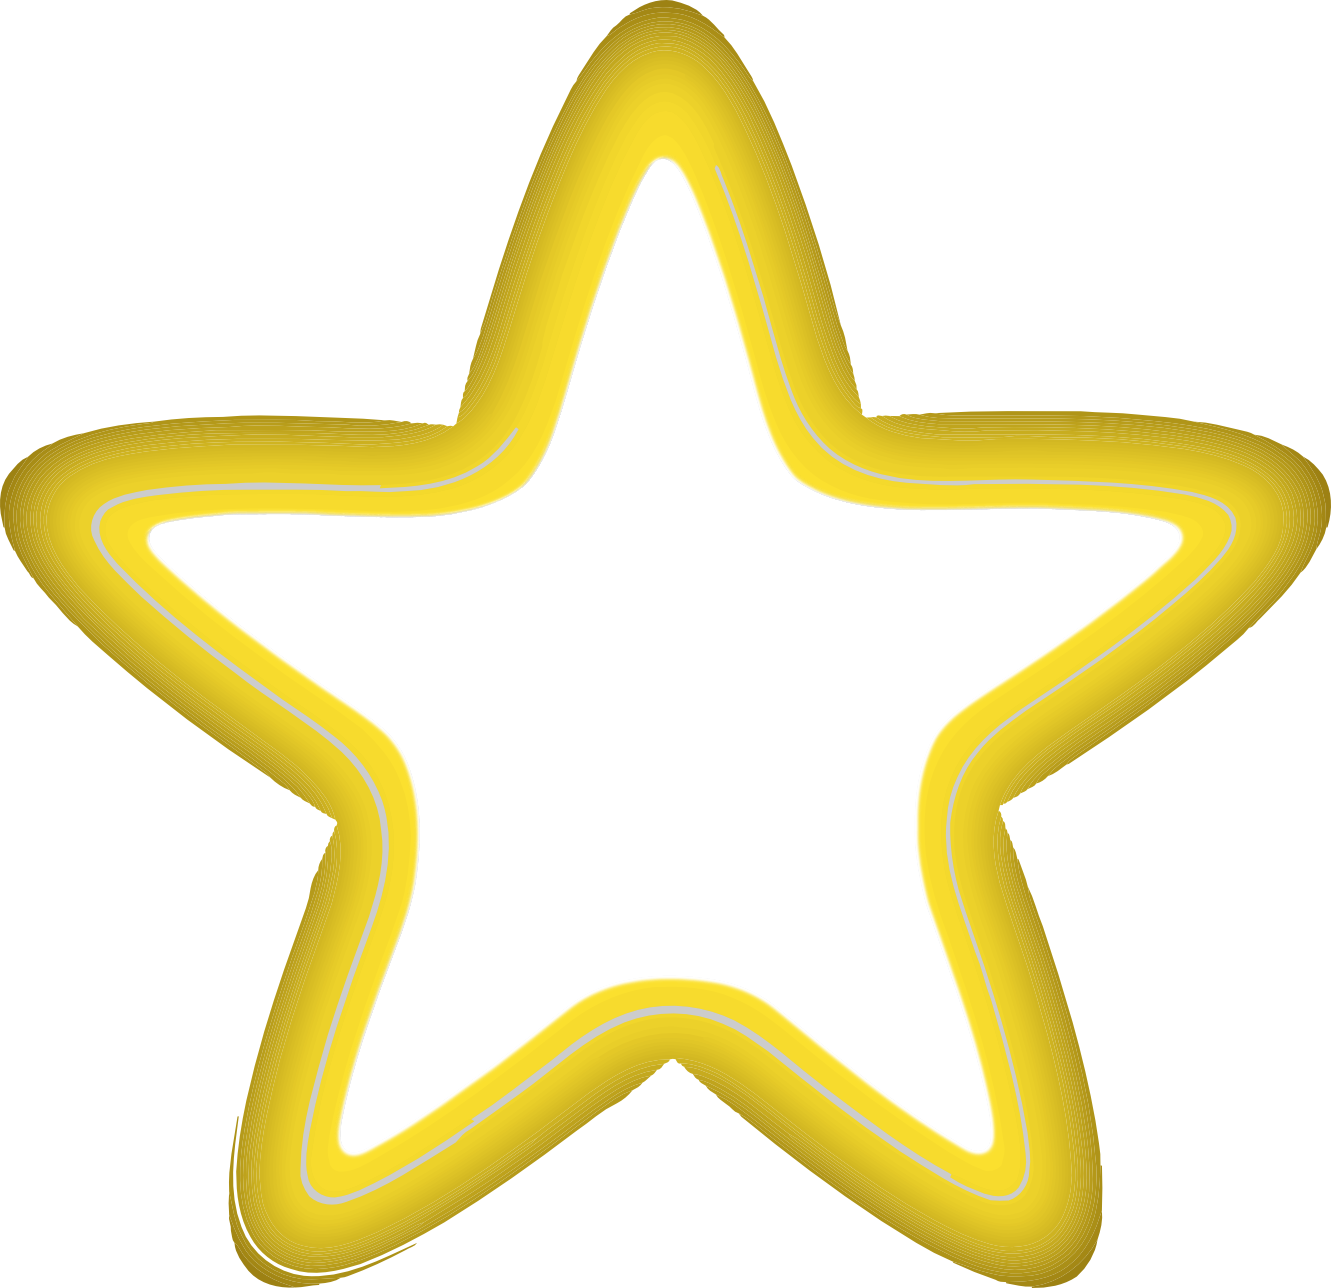 38 yellow stars clip art . Free cliparts that you can download to you ...